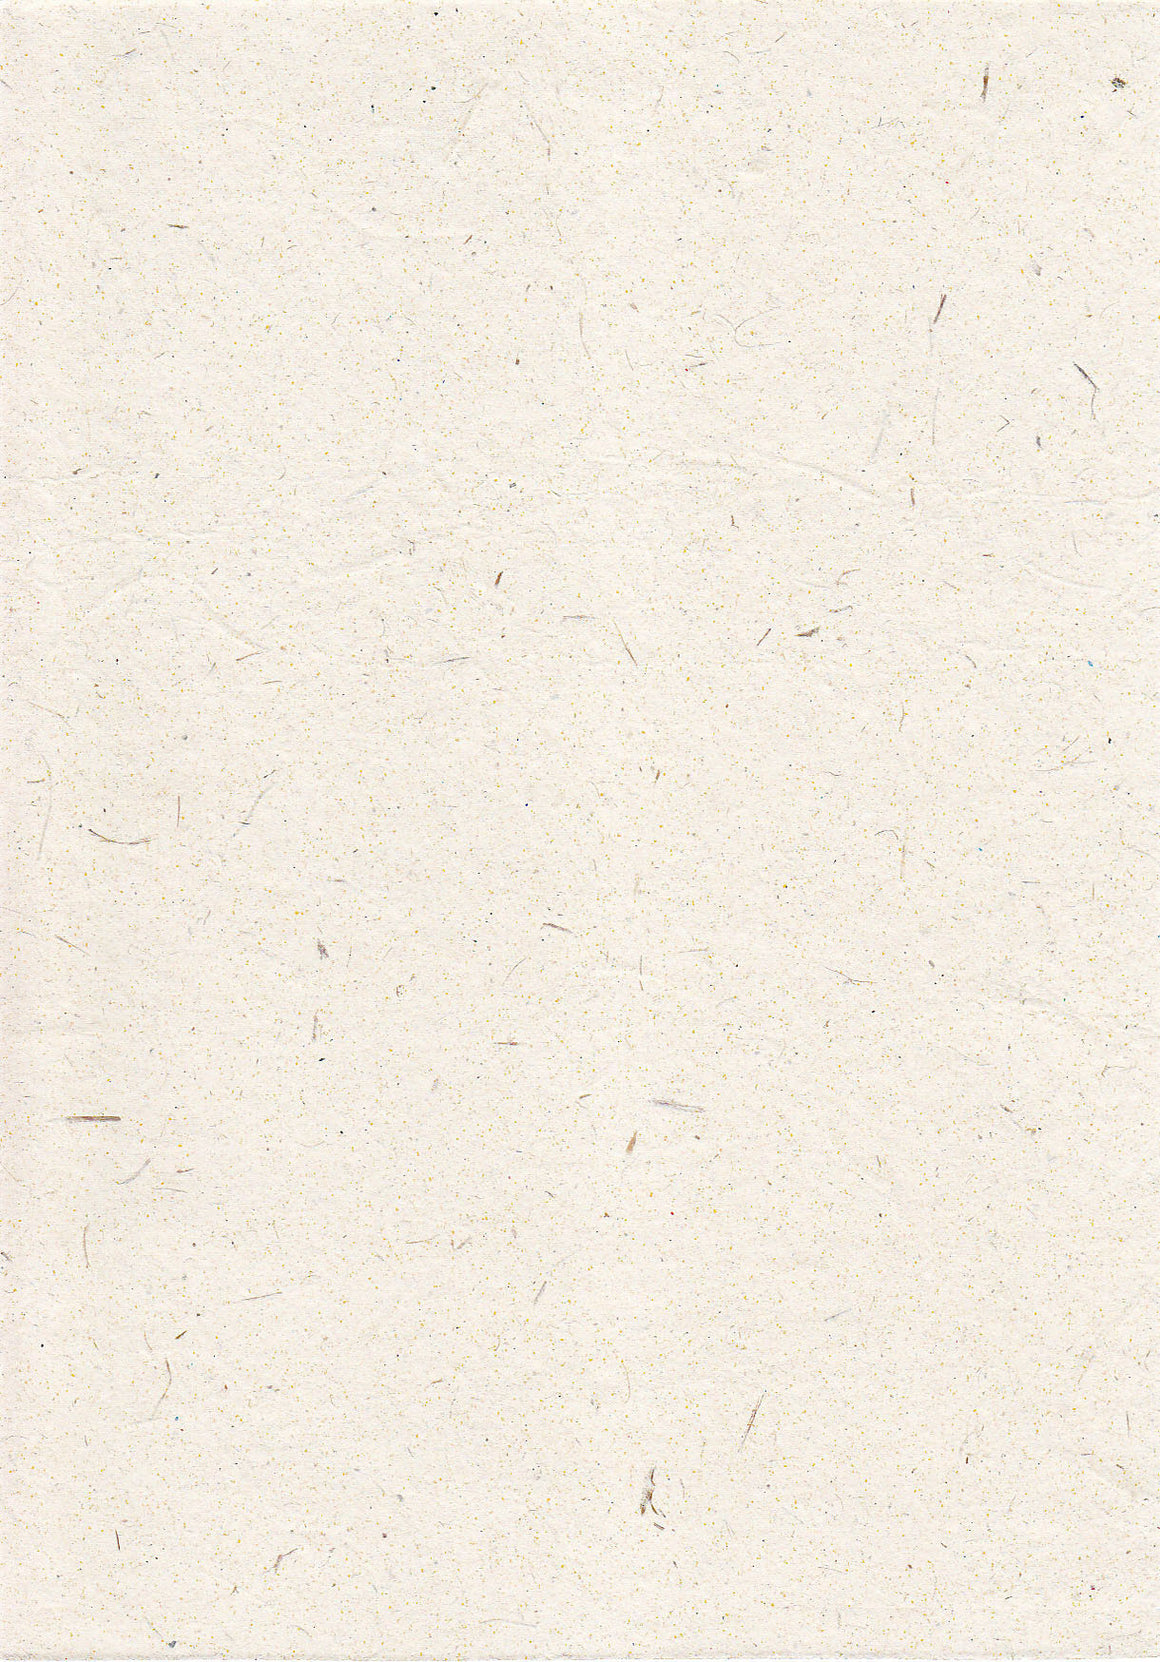 Handmade textured white recycled paper